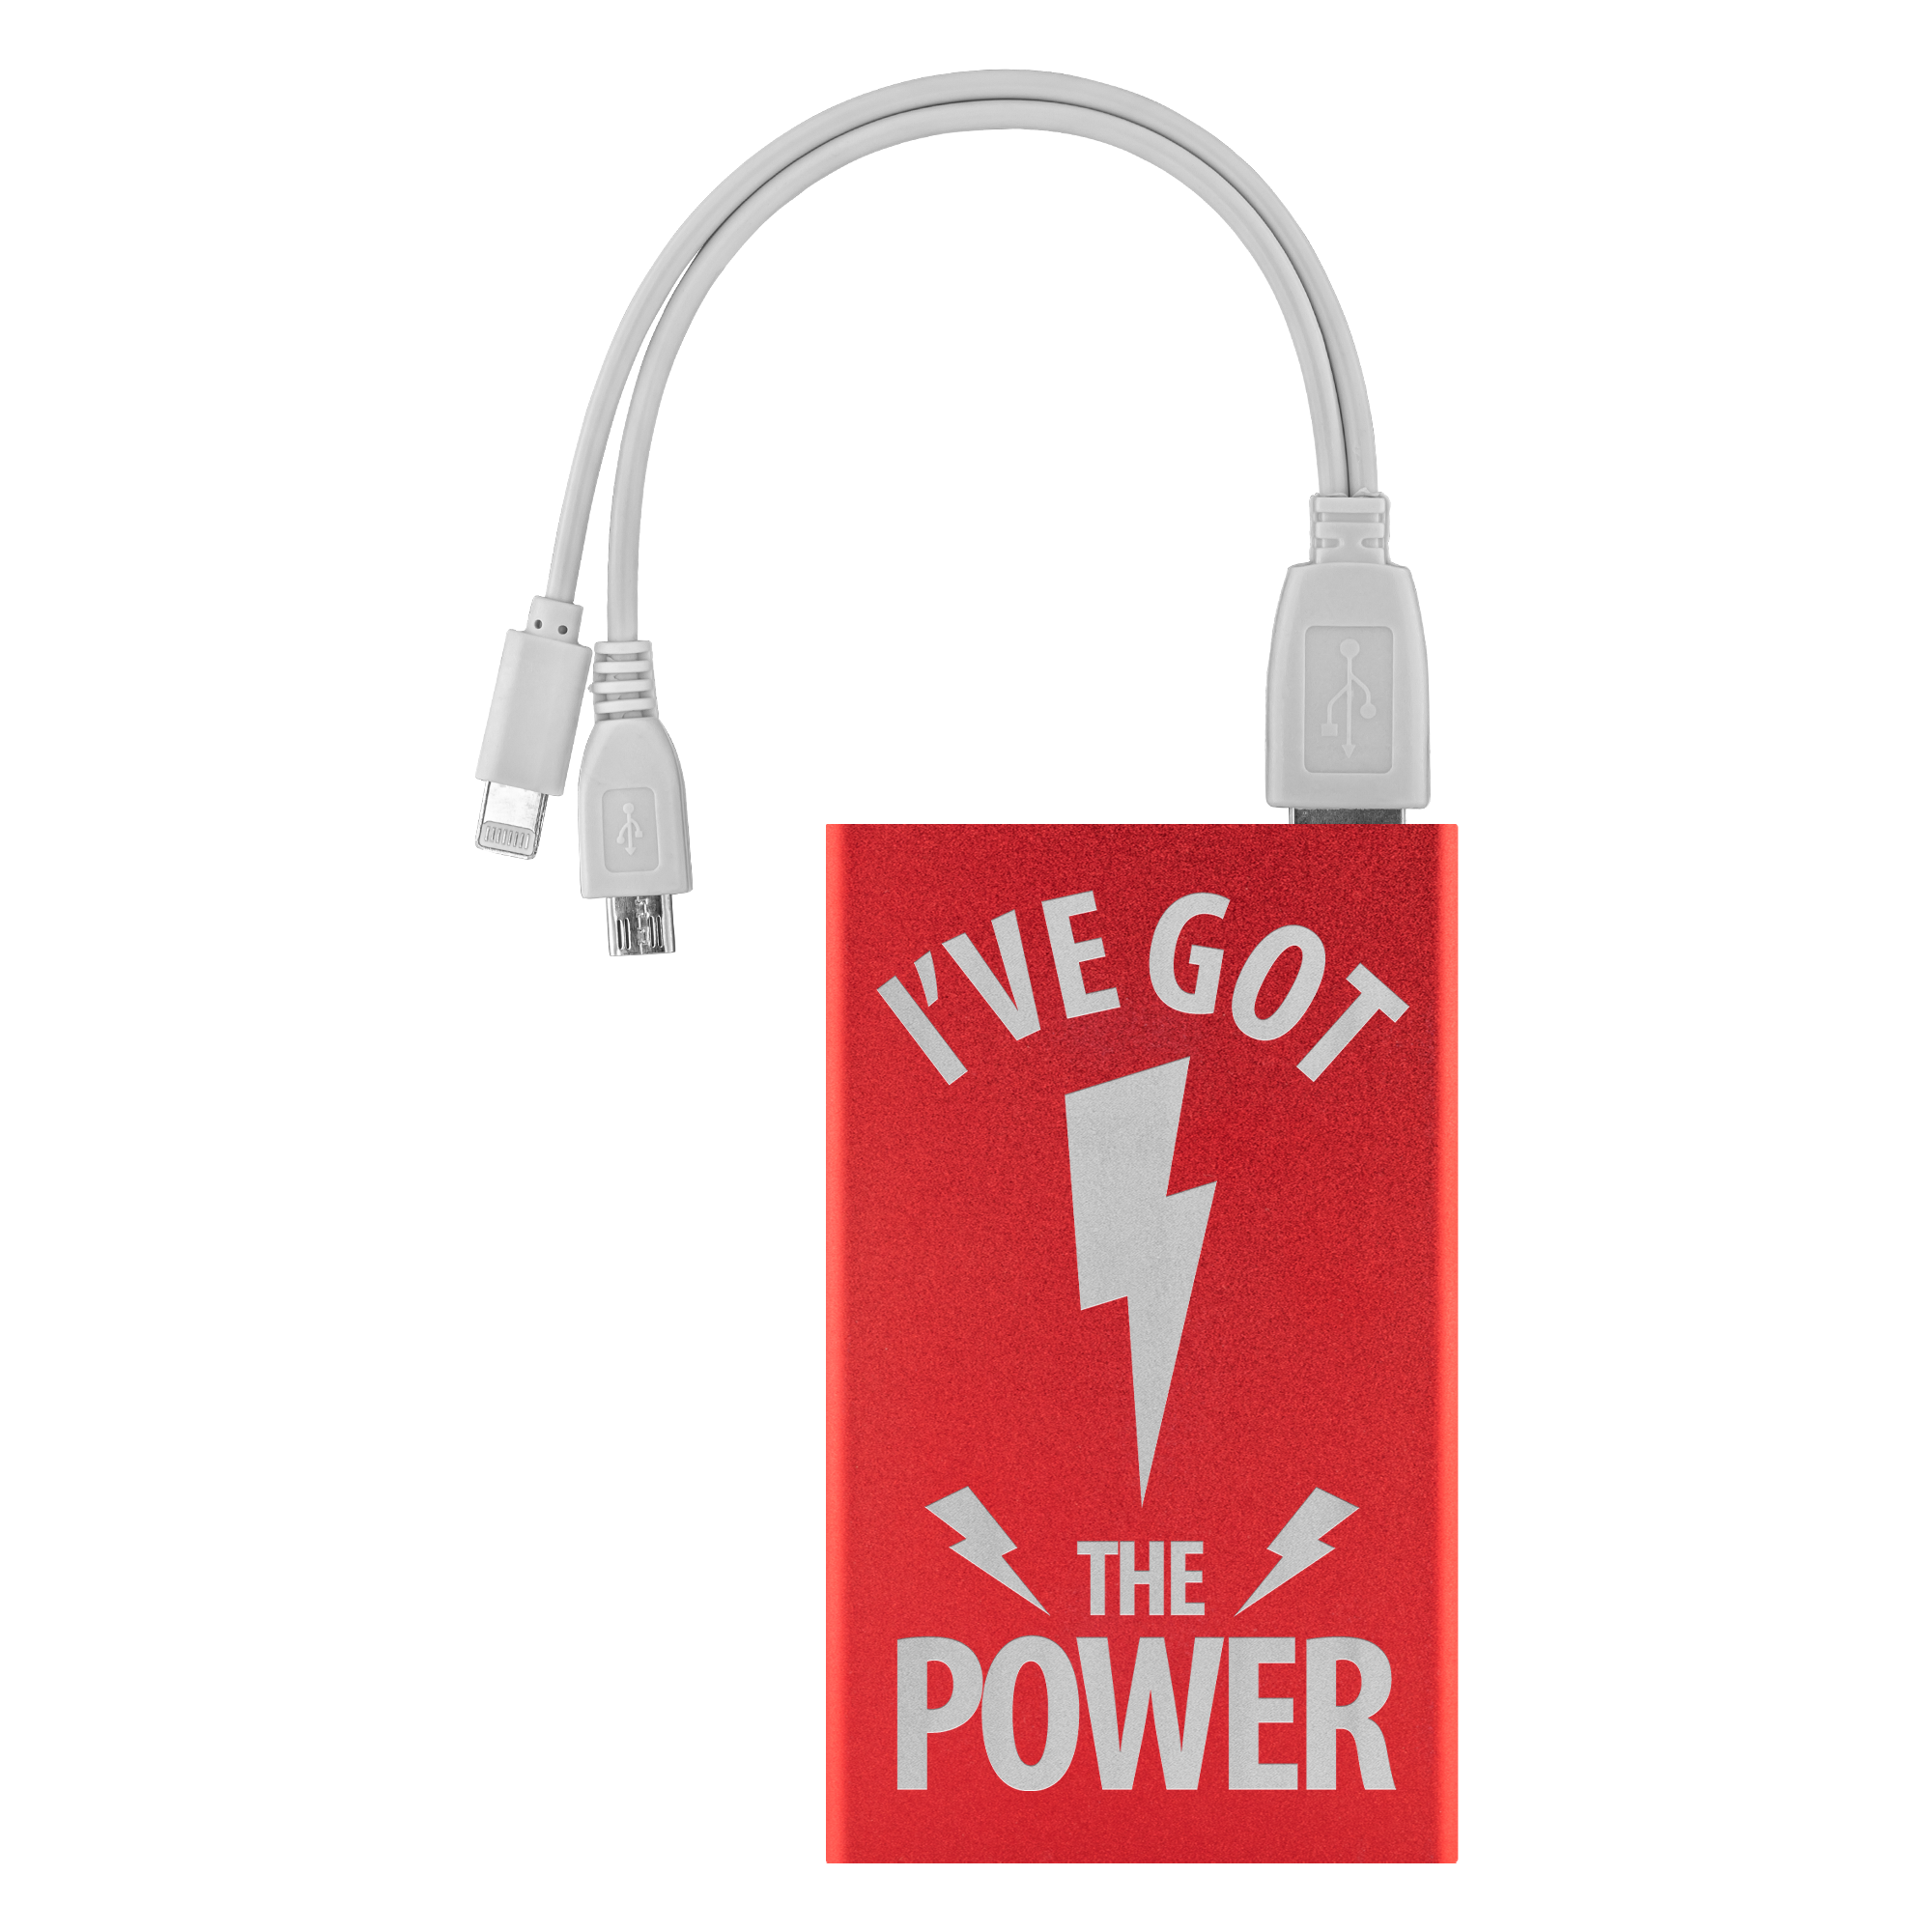 I've Got the Power - Etched Portable Power Bank